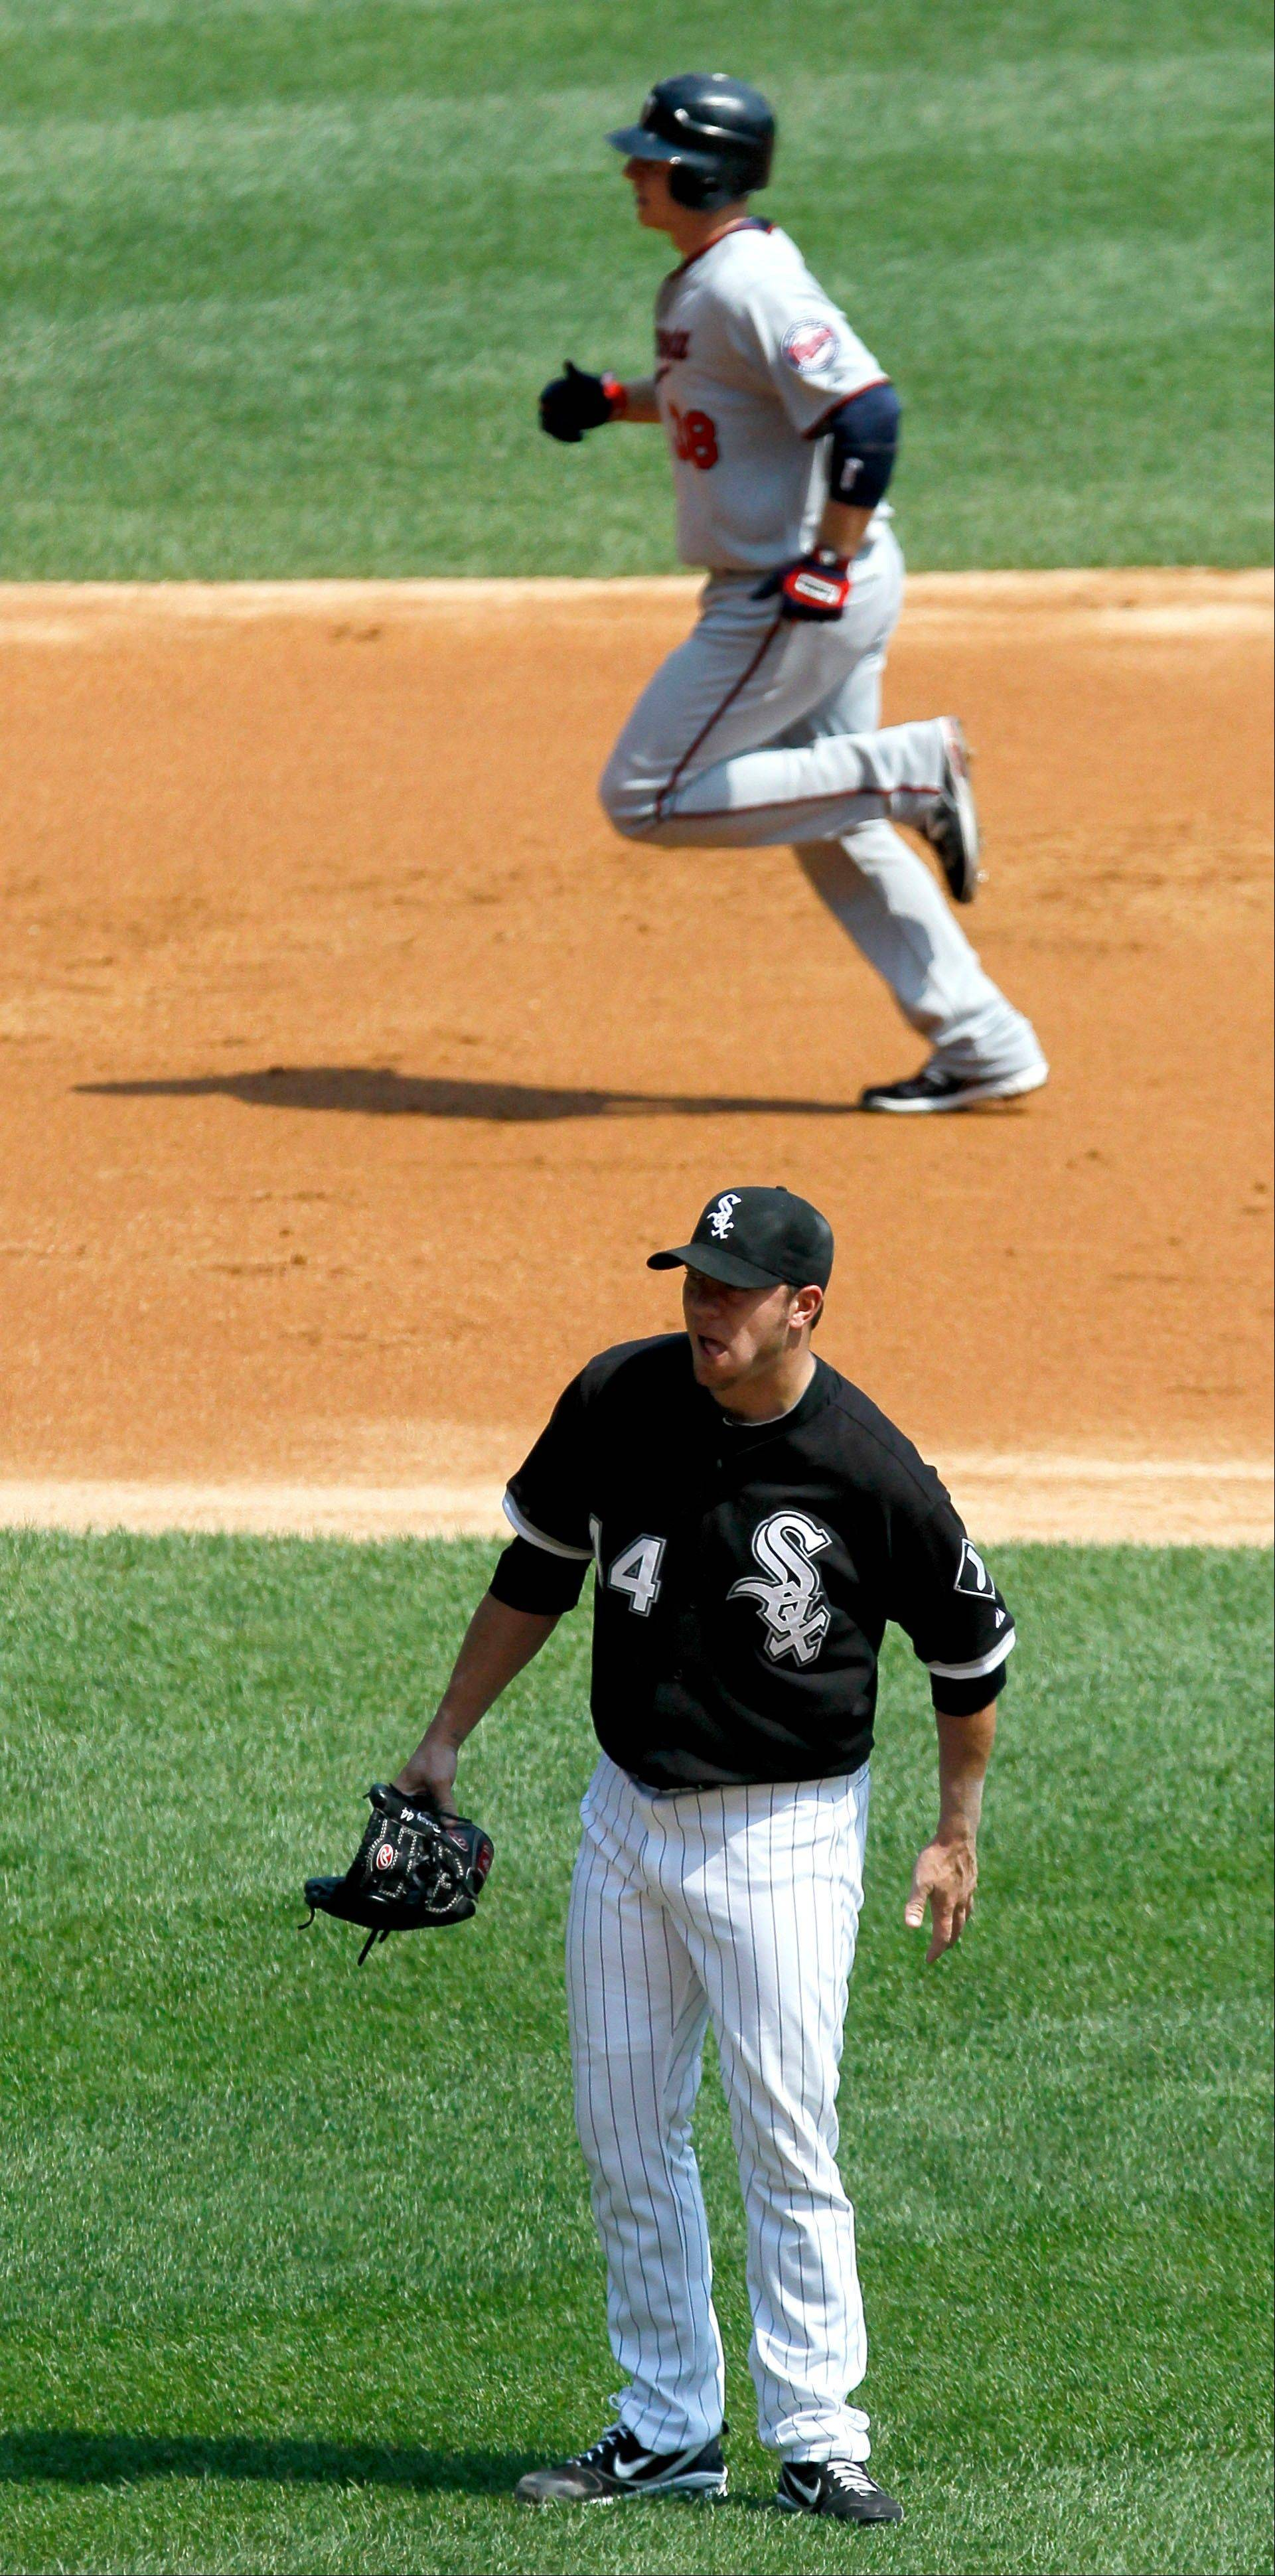 White Sox starting pitcher Jake Peavy returns to the mound after giving up a 2-run home run to Luke Hughes during Minnesota's 6-run first inning Wednesday afternoon at U.S. Cellular Field.